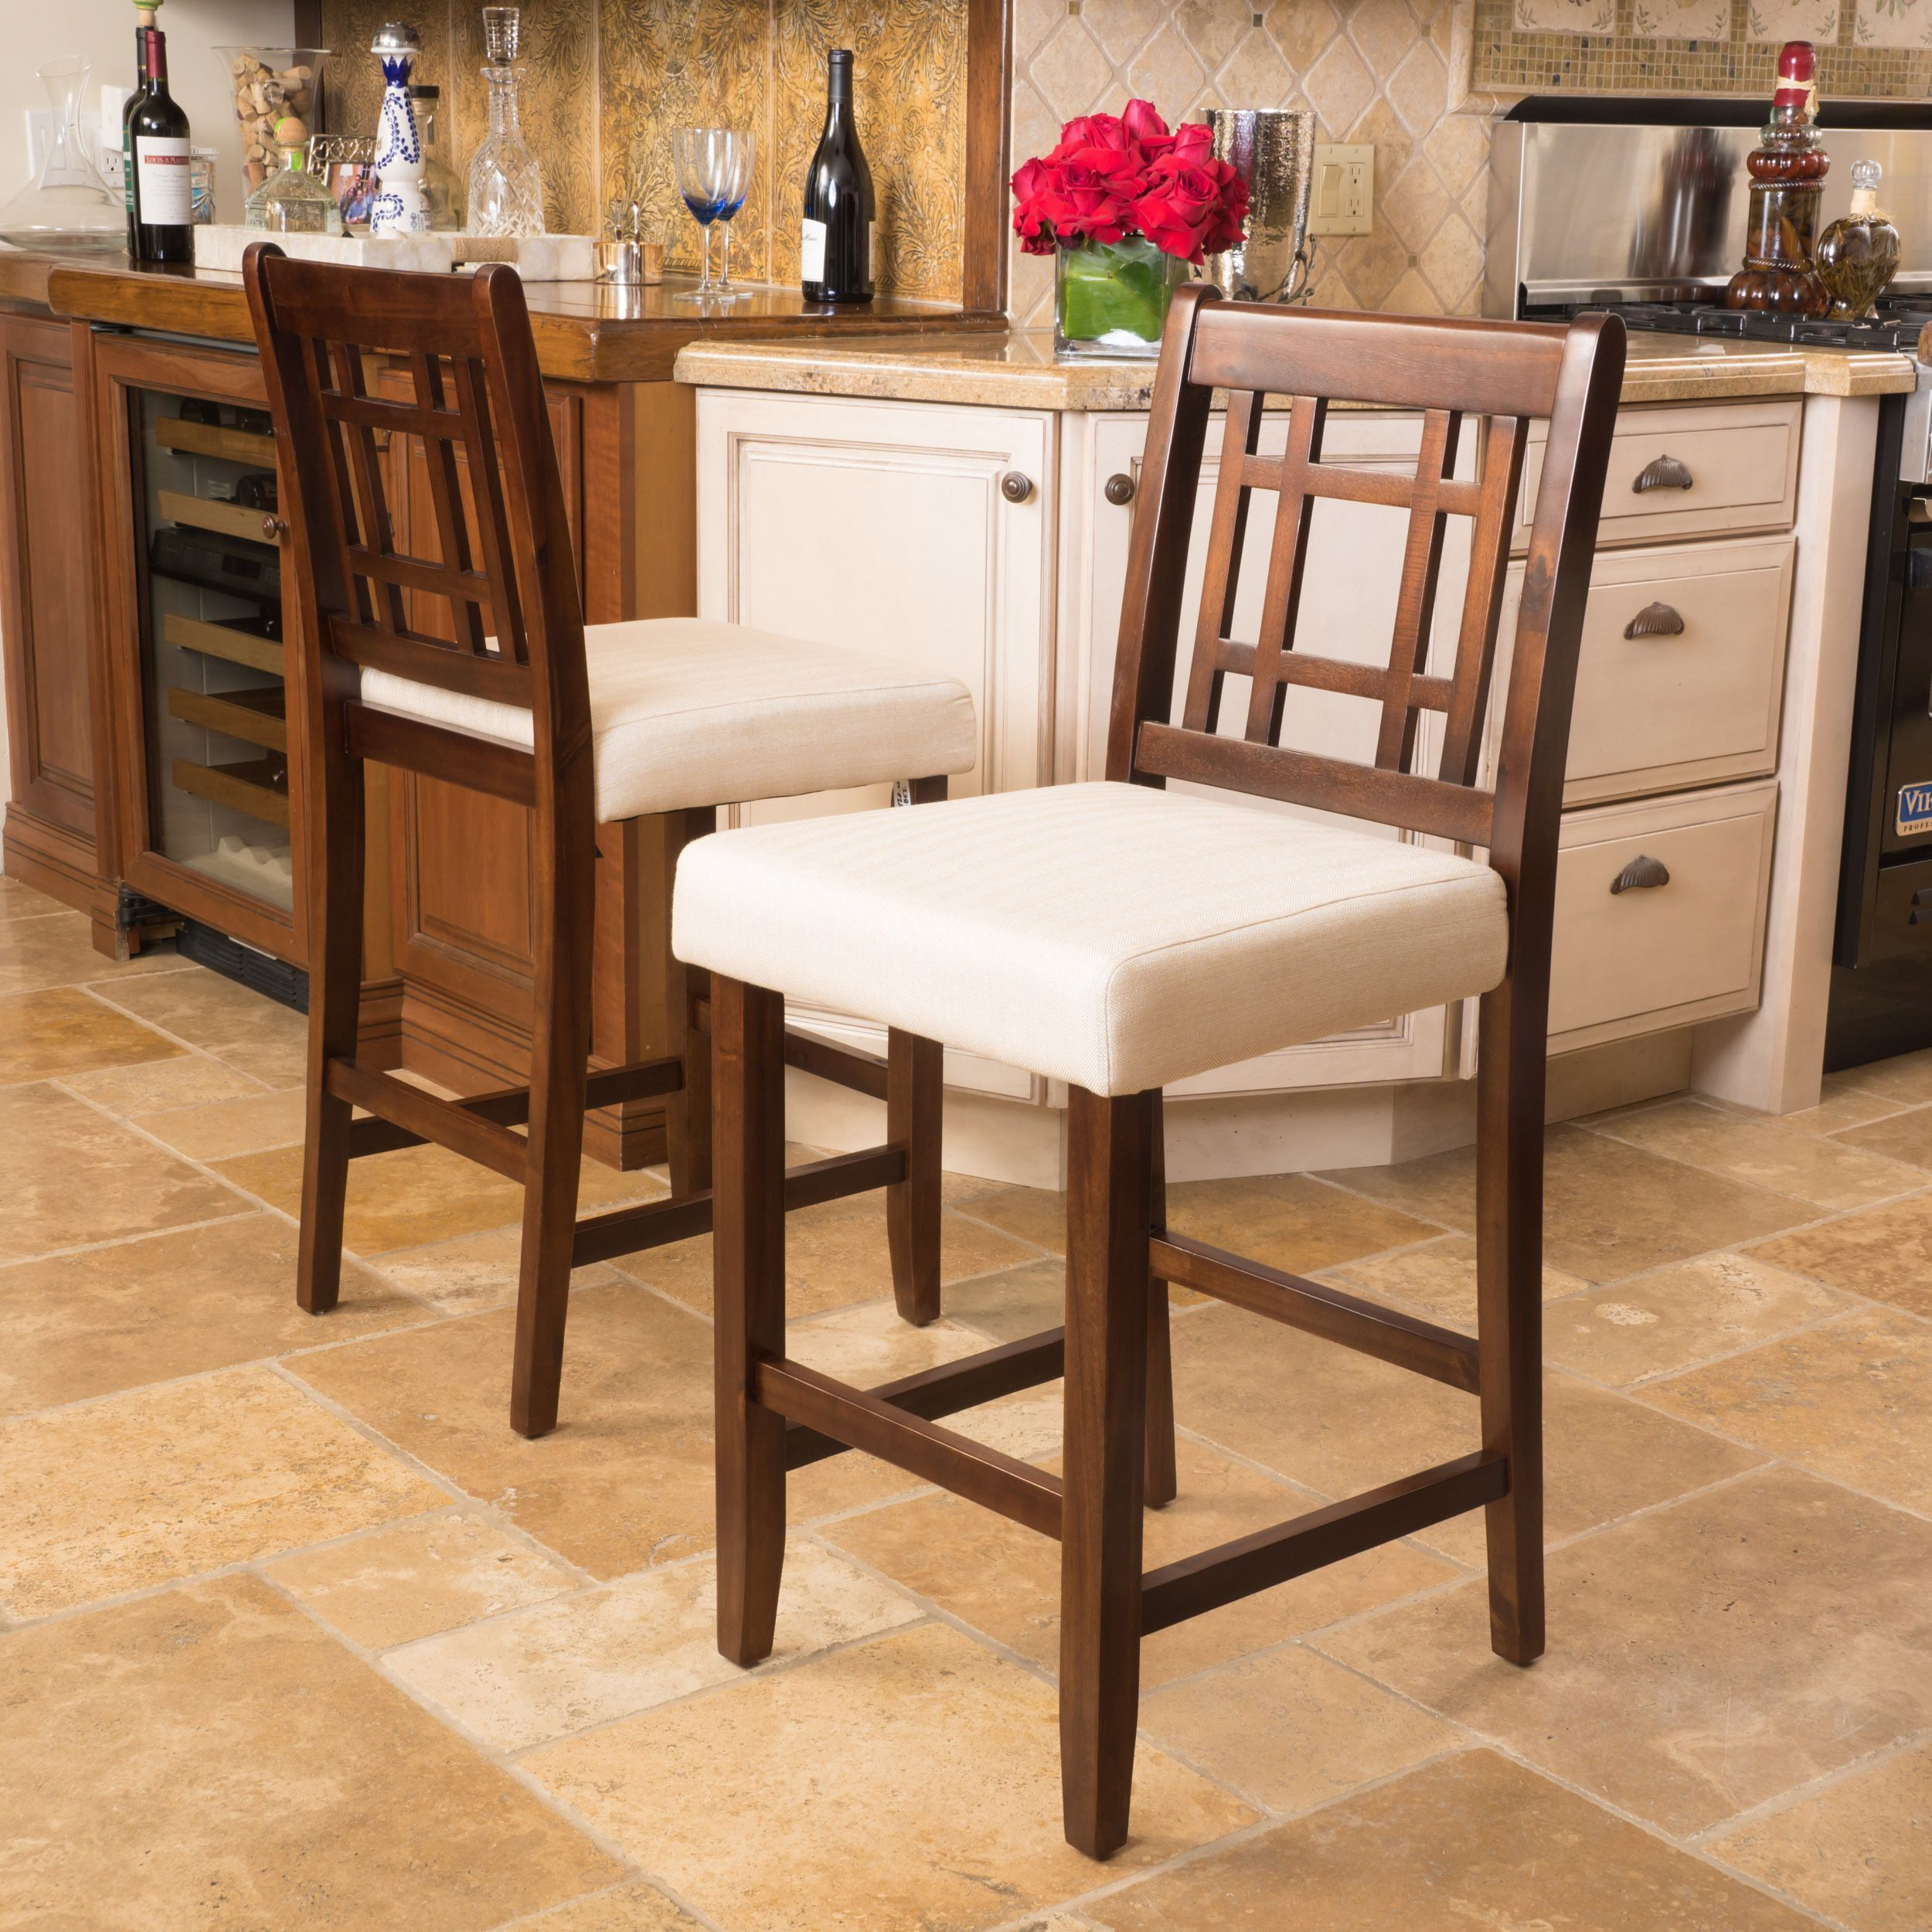 Christopher Knight Home Nadia Wood Counter Stool   Products   Pinterest